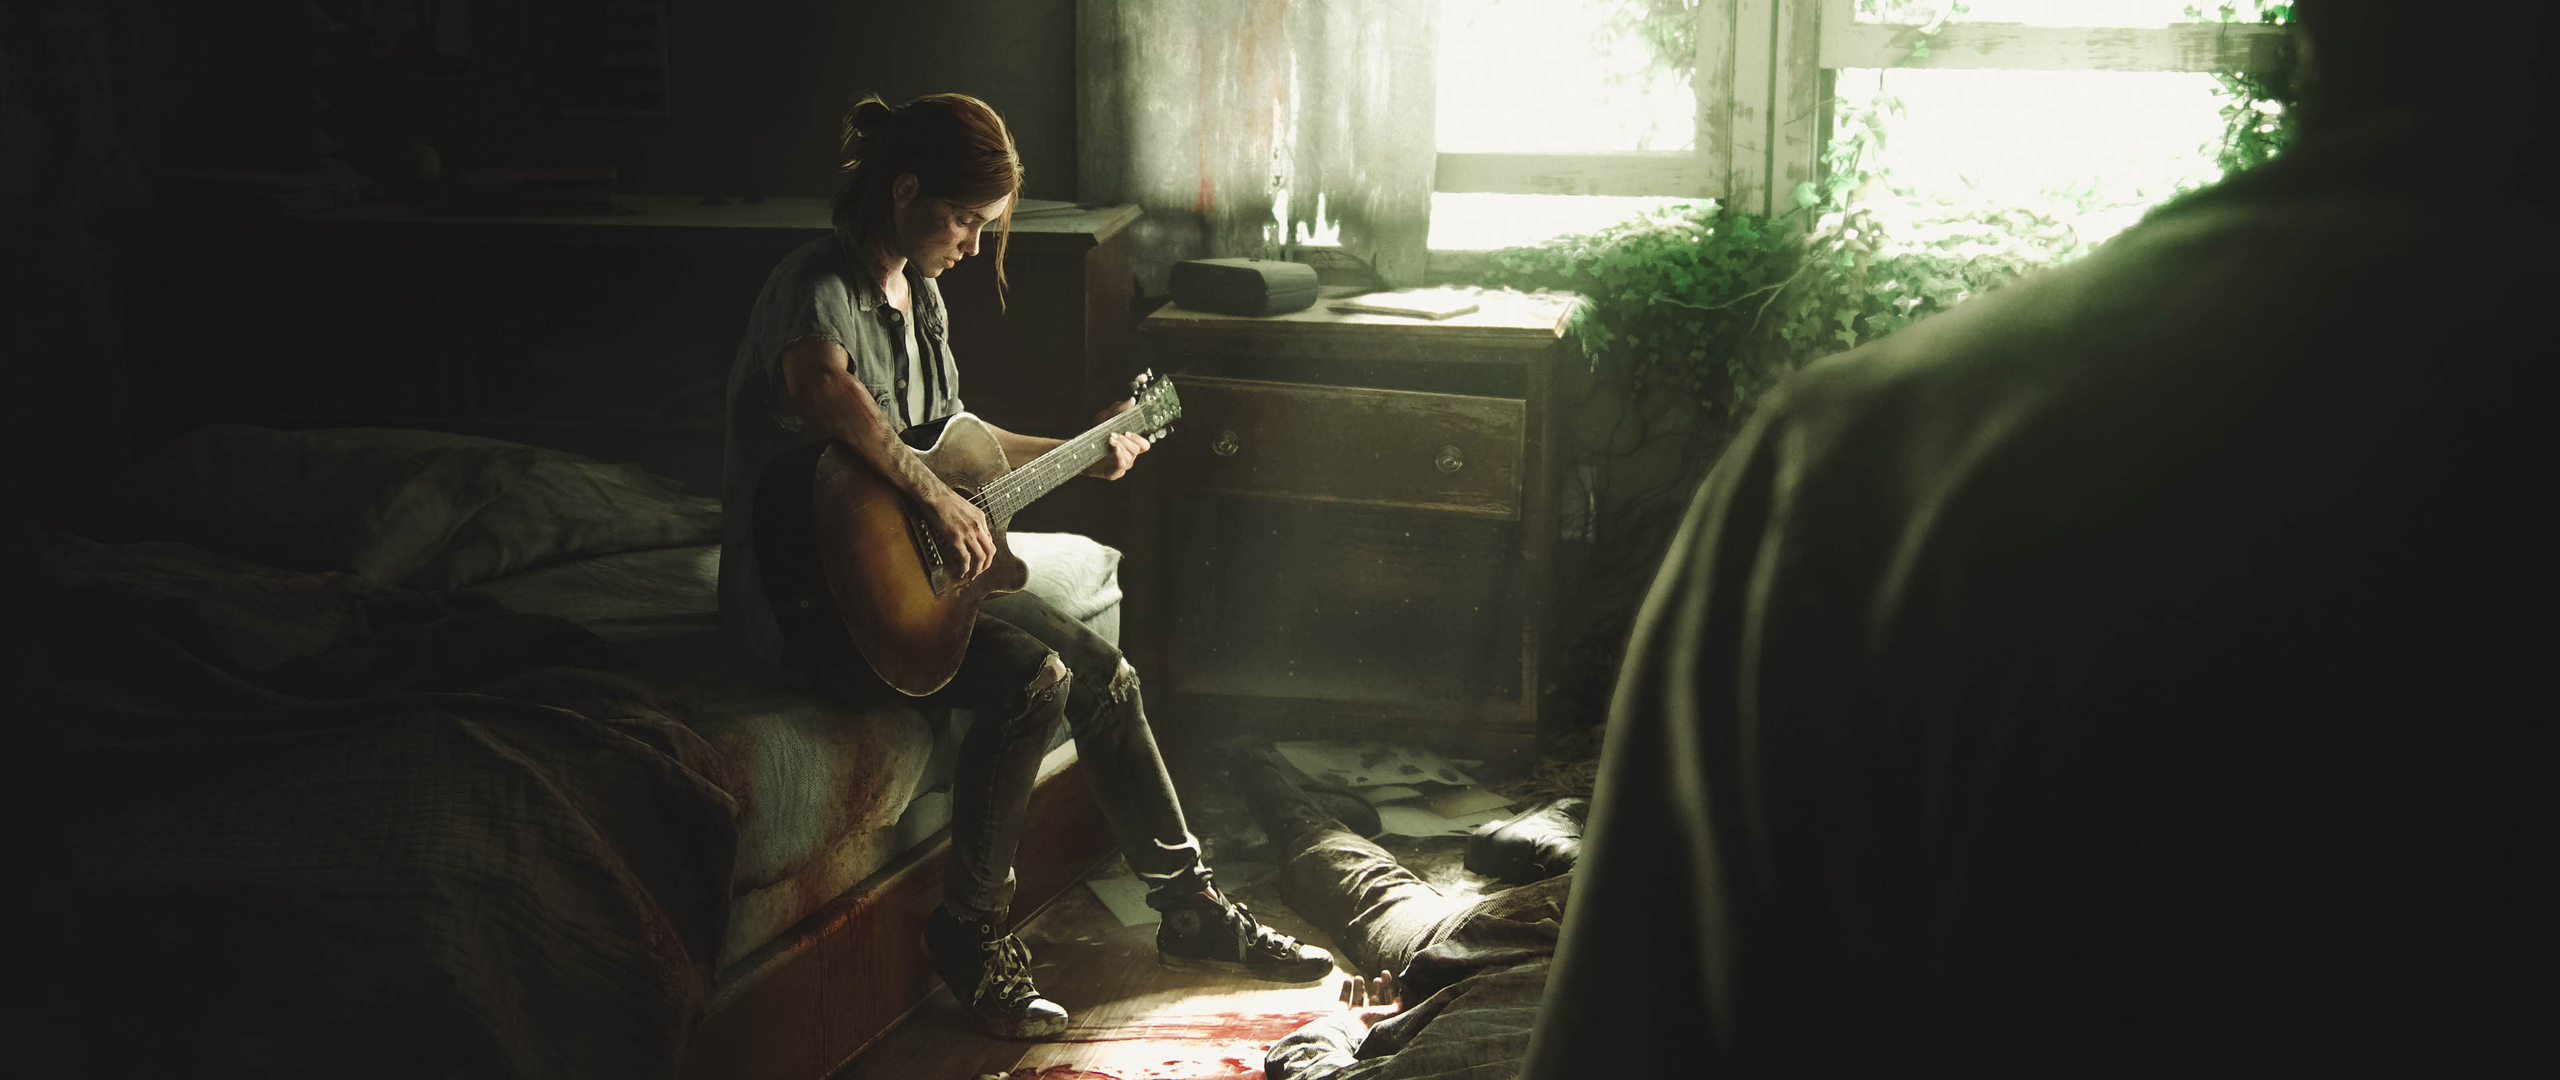 The Last Of Us Part 2 Wallpaper: 2560x1080 The Last Of Us Part II 2560x1080 Resolution HD